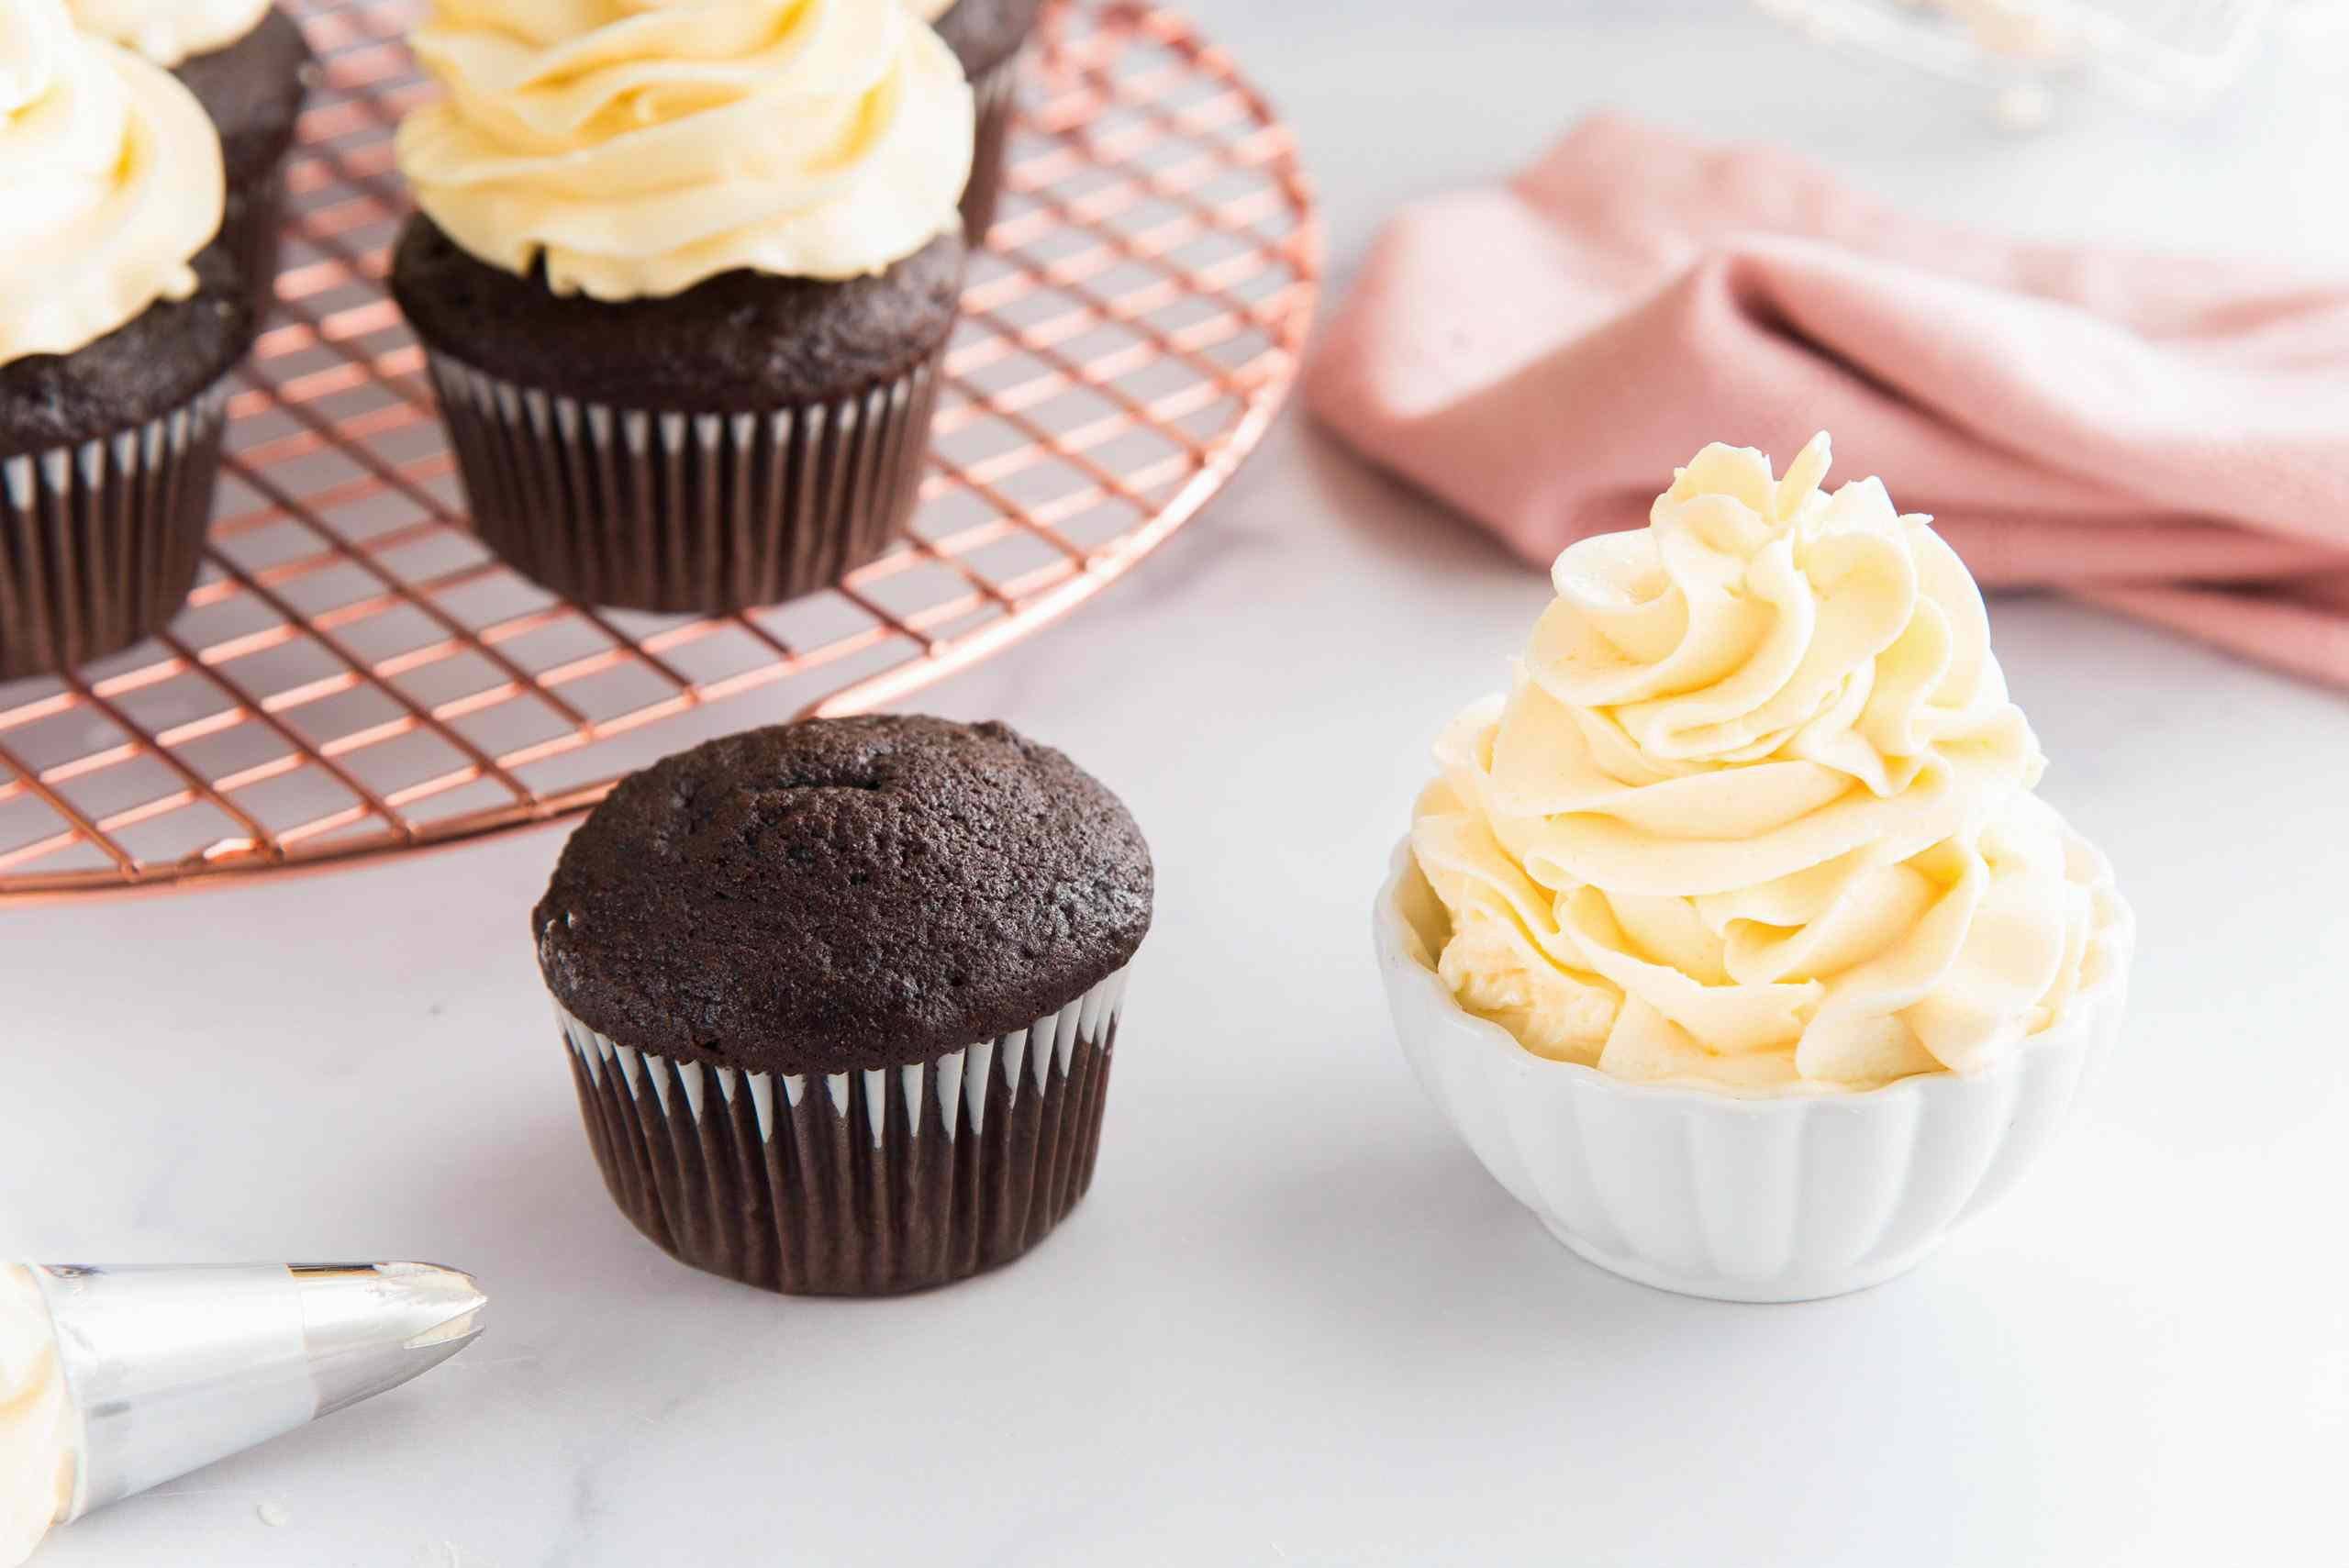 The best French buttercream piped in a small bowl and chocolate cupcakes to the left.